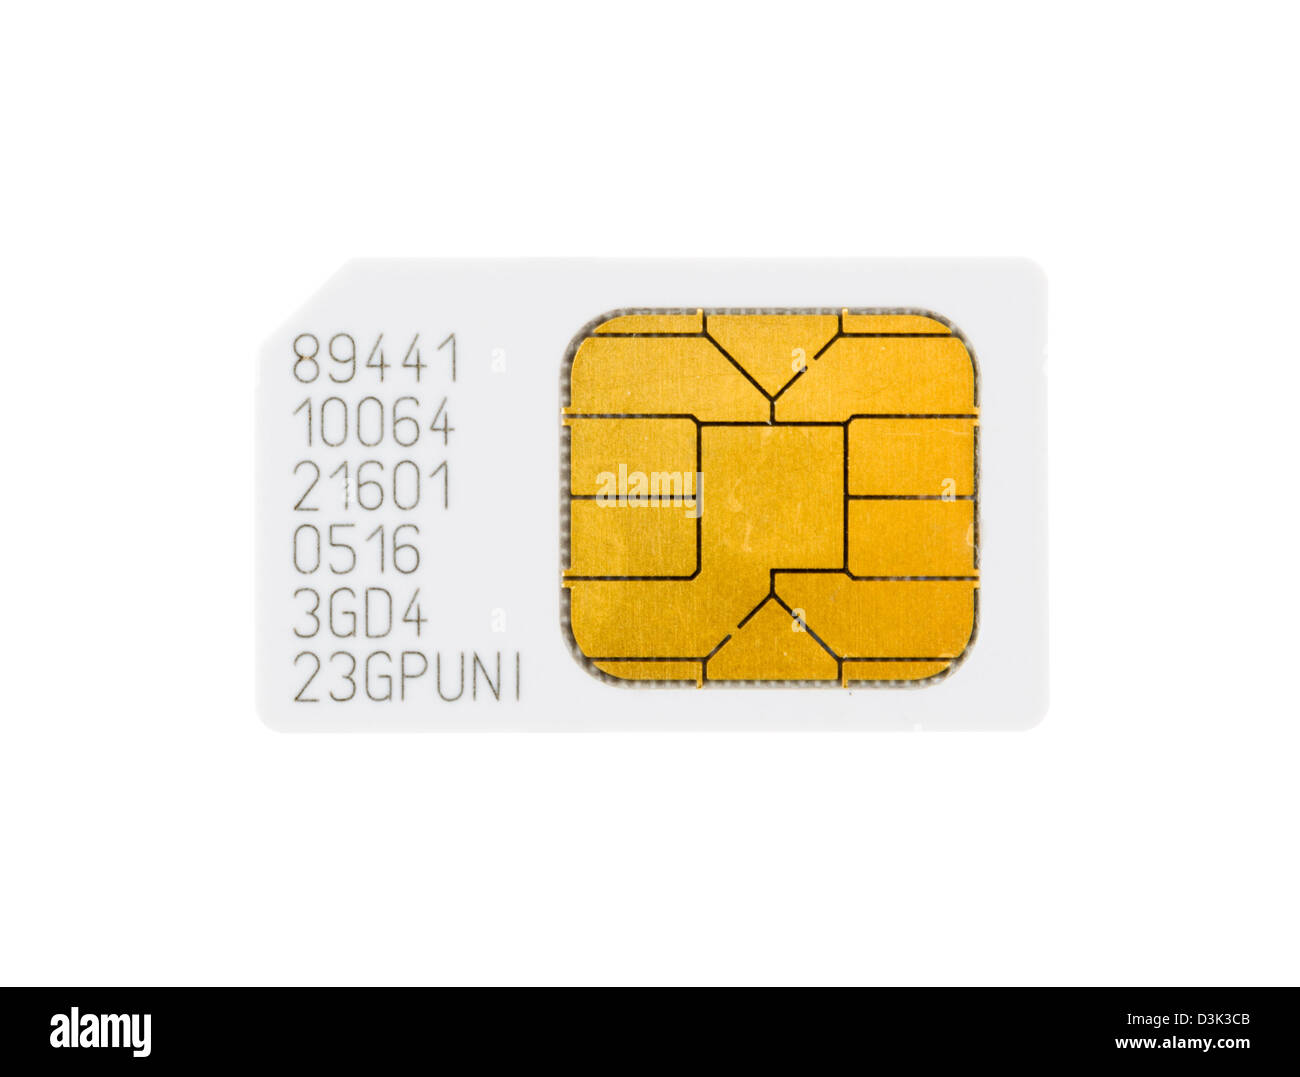 A SIM card for a mobile phone - Stock Image